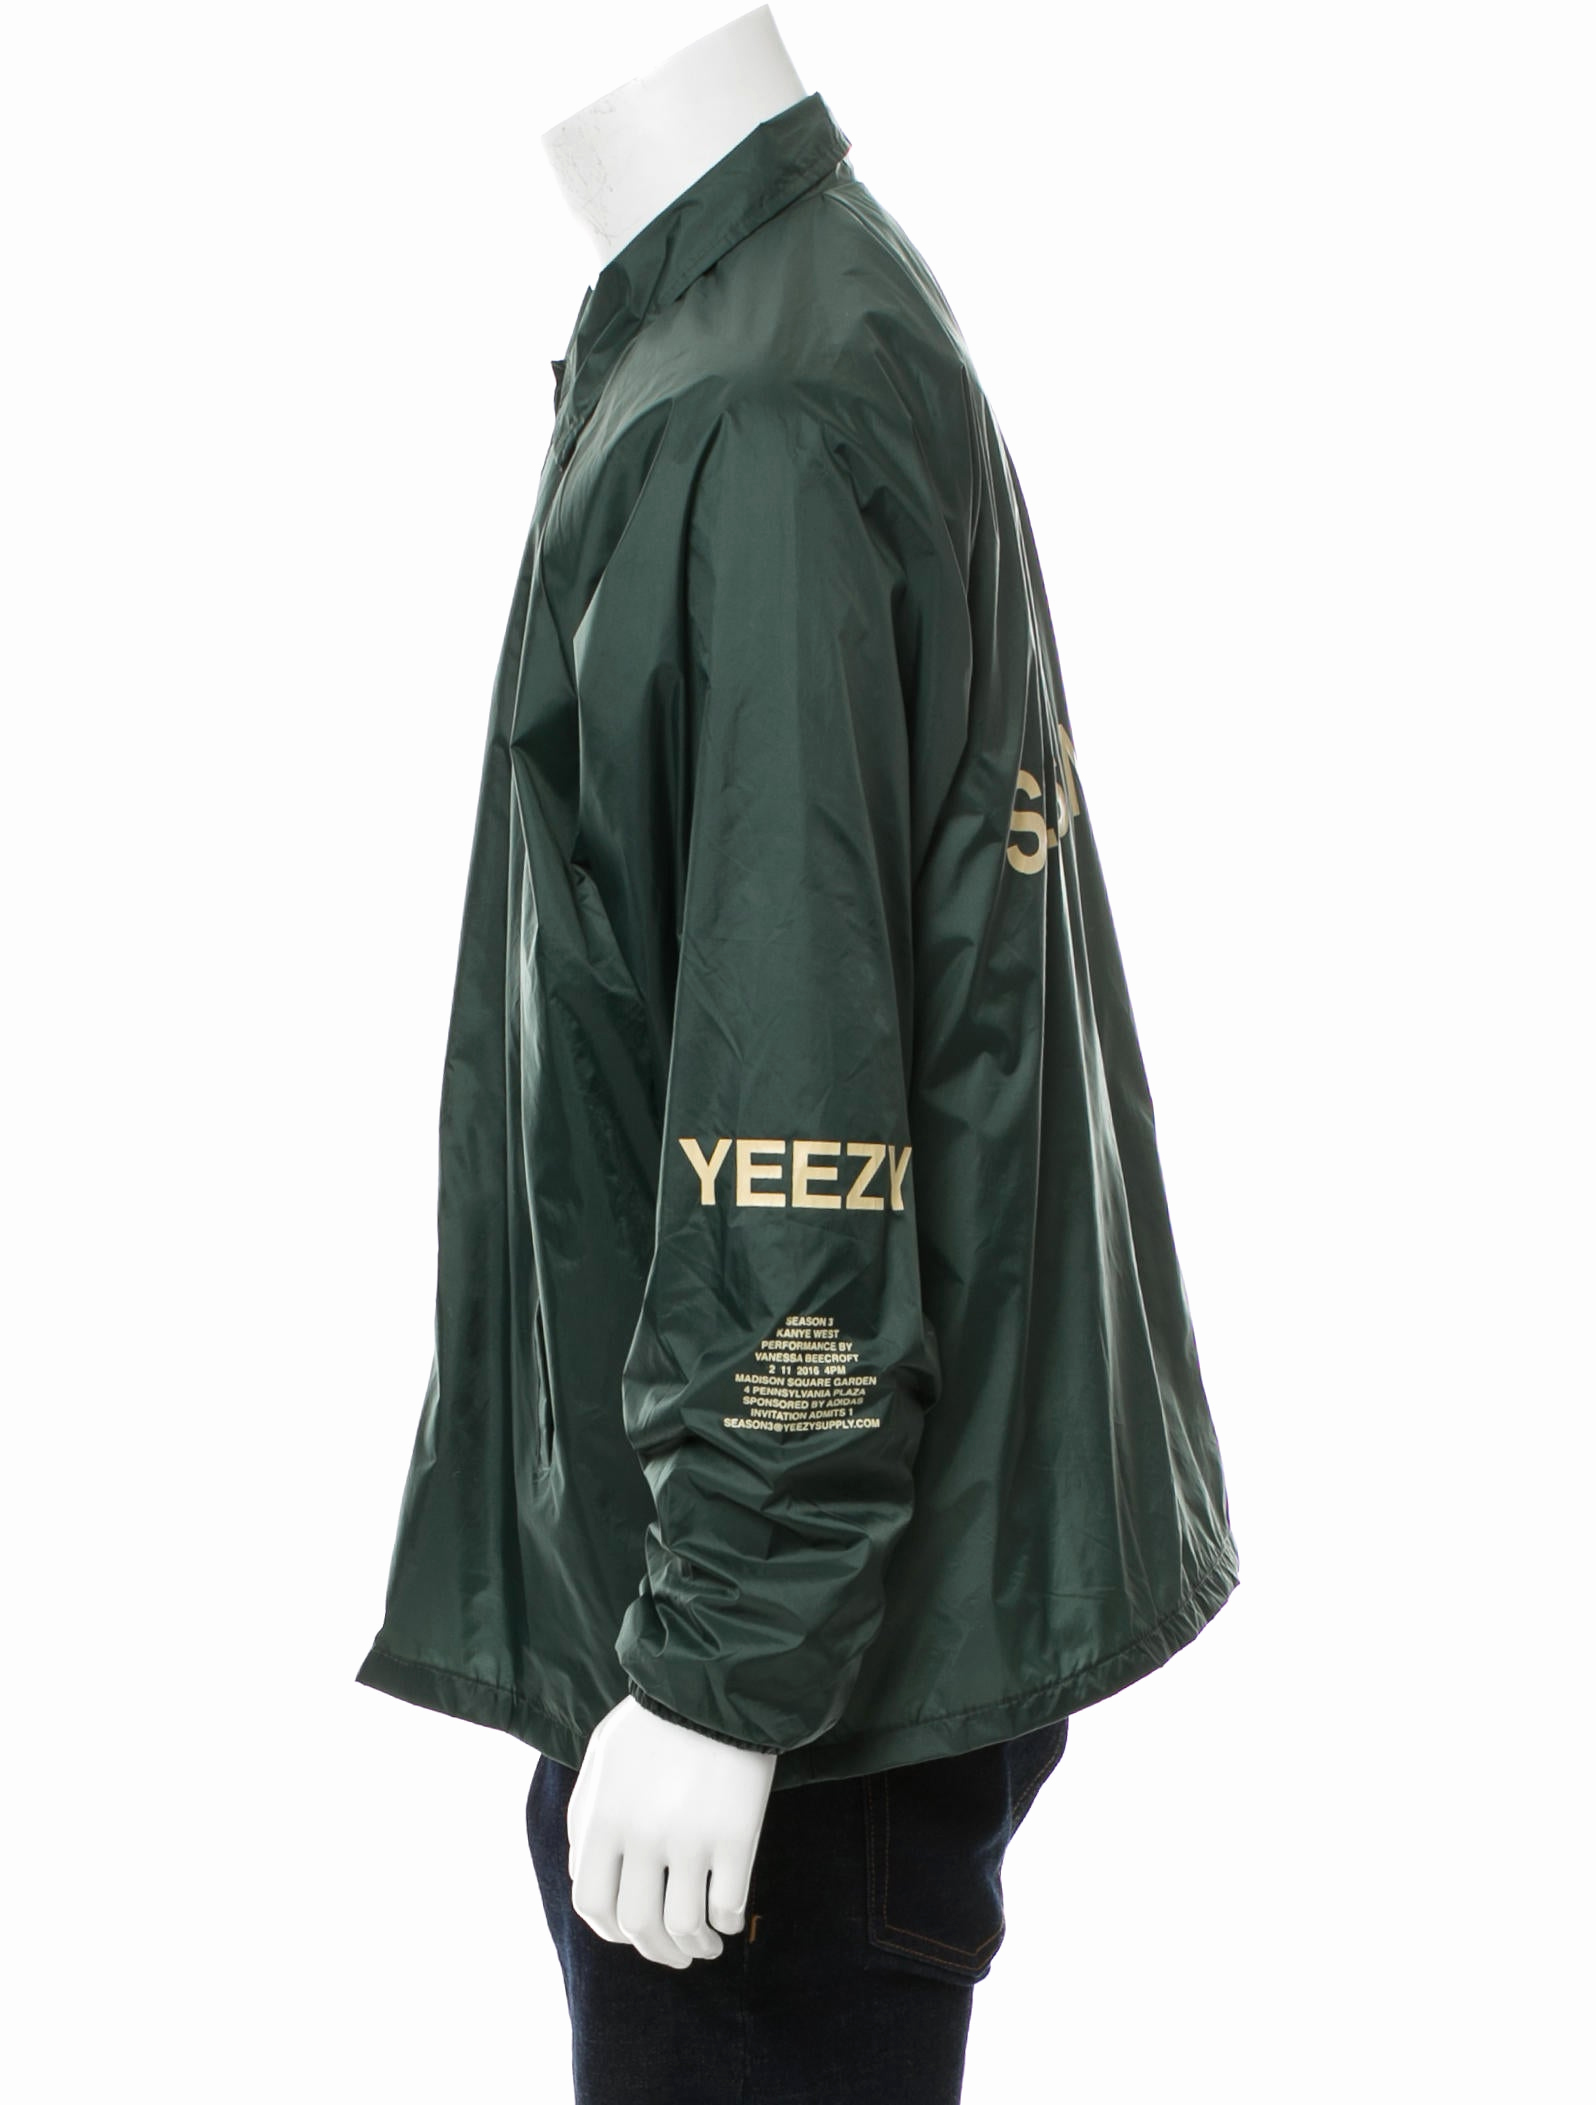 Yeezy Invitation 3 Windbreaker Elegant Yeezy Season 3 Invitation Coaches Jacket Clothing